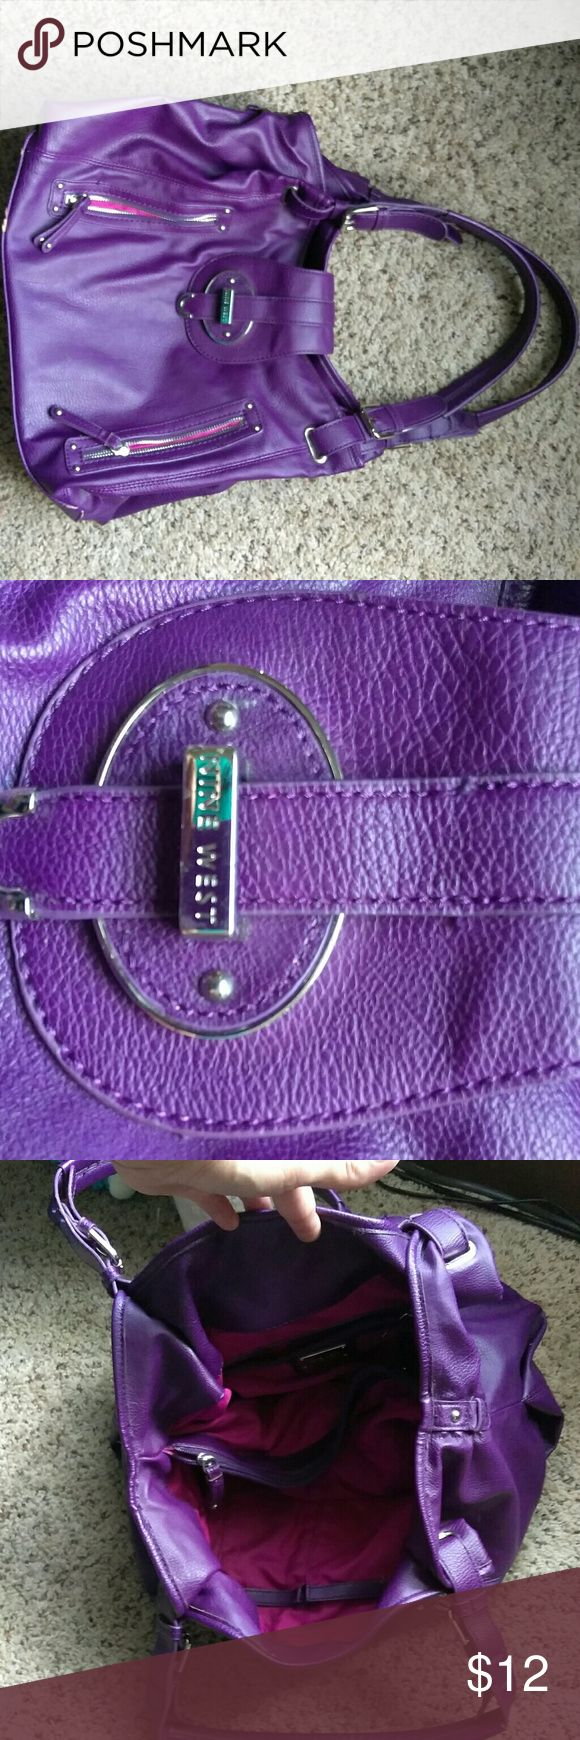 Large nine West purse Good condition nine West purse in great condition. A small mark on bottom and side as shown in pictures. Smoke free home Nine West Bags Shoulder Bags